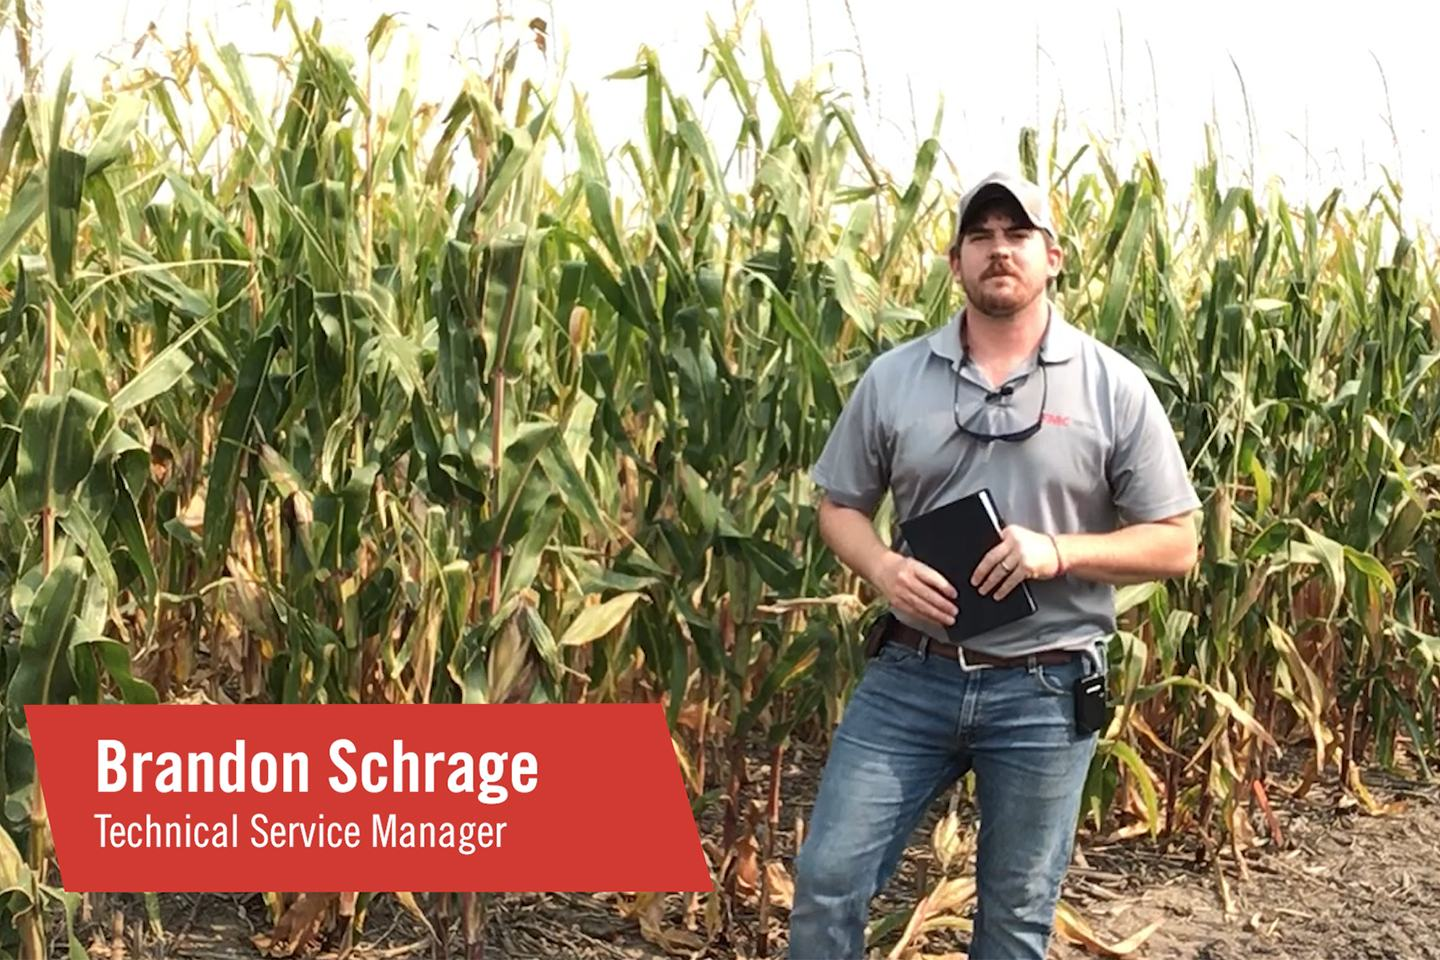 FMC Technical Service Manager, Brandon Schrage, outlines key components of a successful fall burndown program.